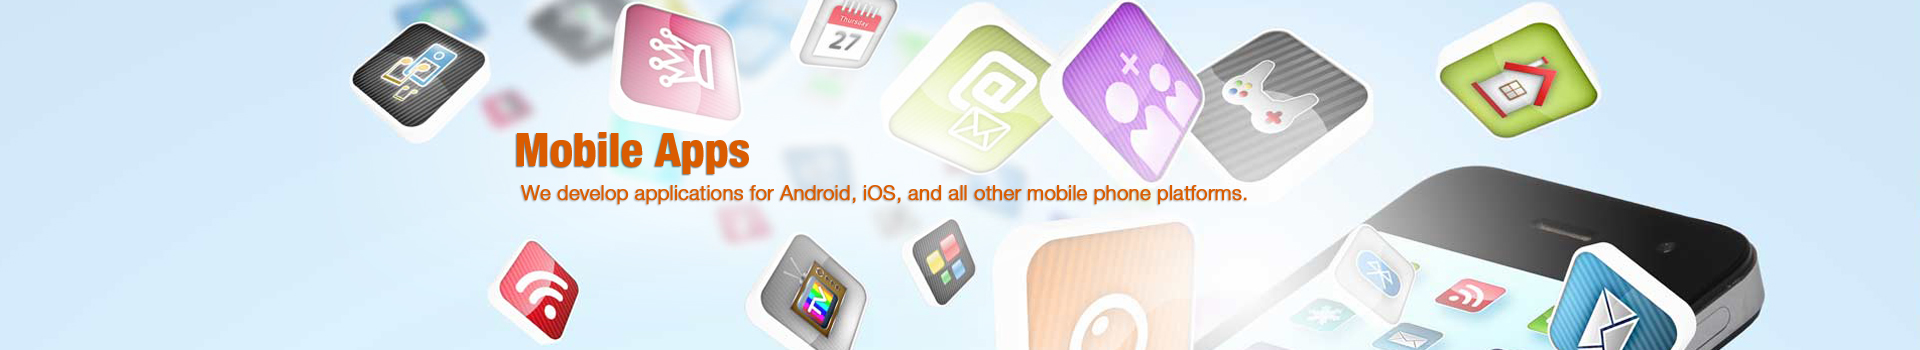 ios application development companies in pune